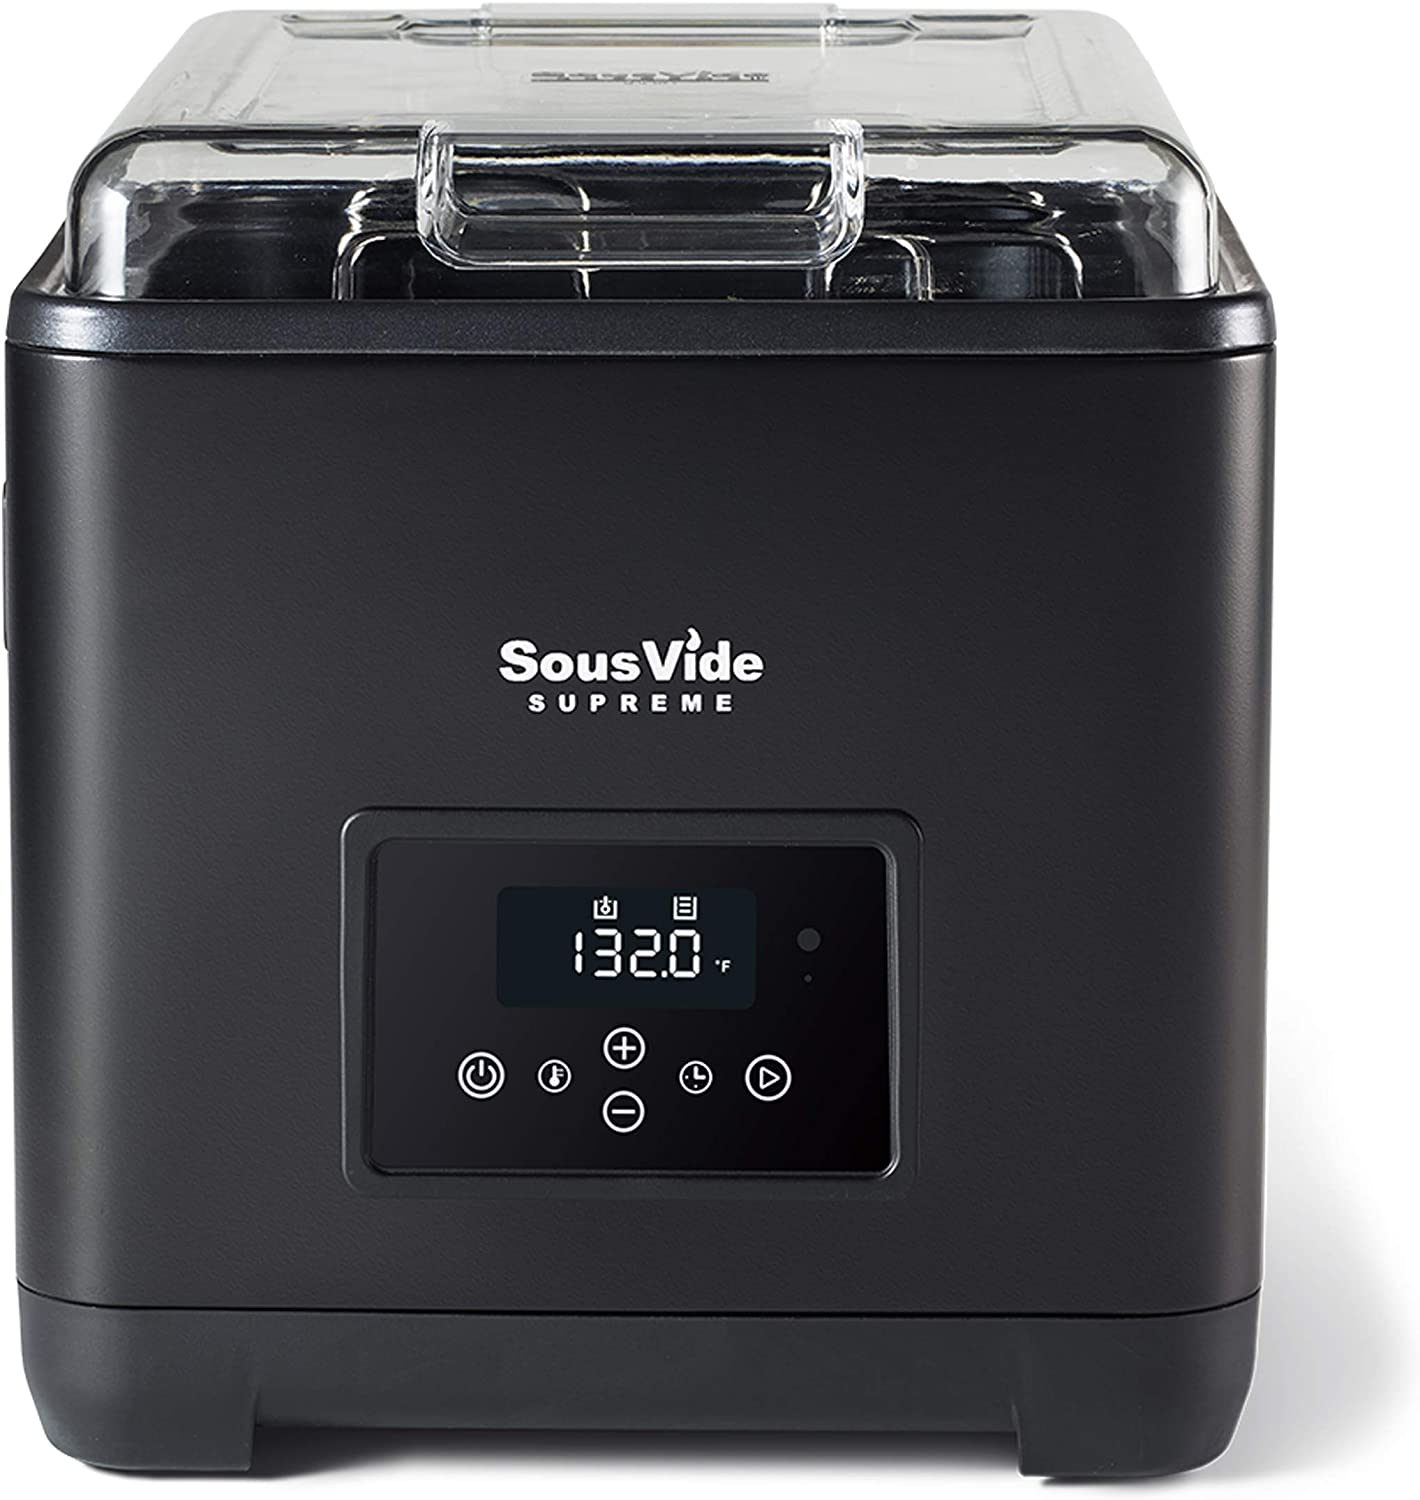 SousVide Supreme Touch 9 Liter   Sous Vide Water Oven   Accurate and Stable Temperature   Touch Control Water Bath Cooker   Quiet Operation